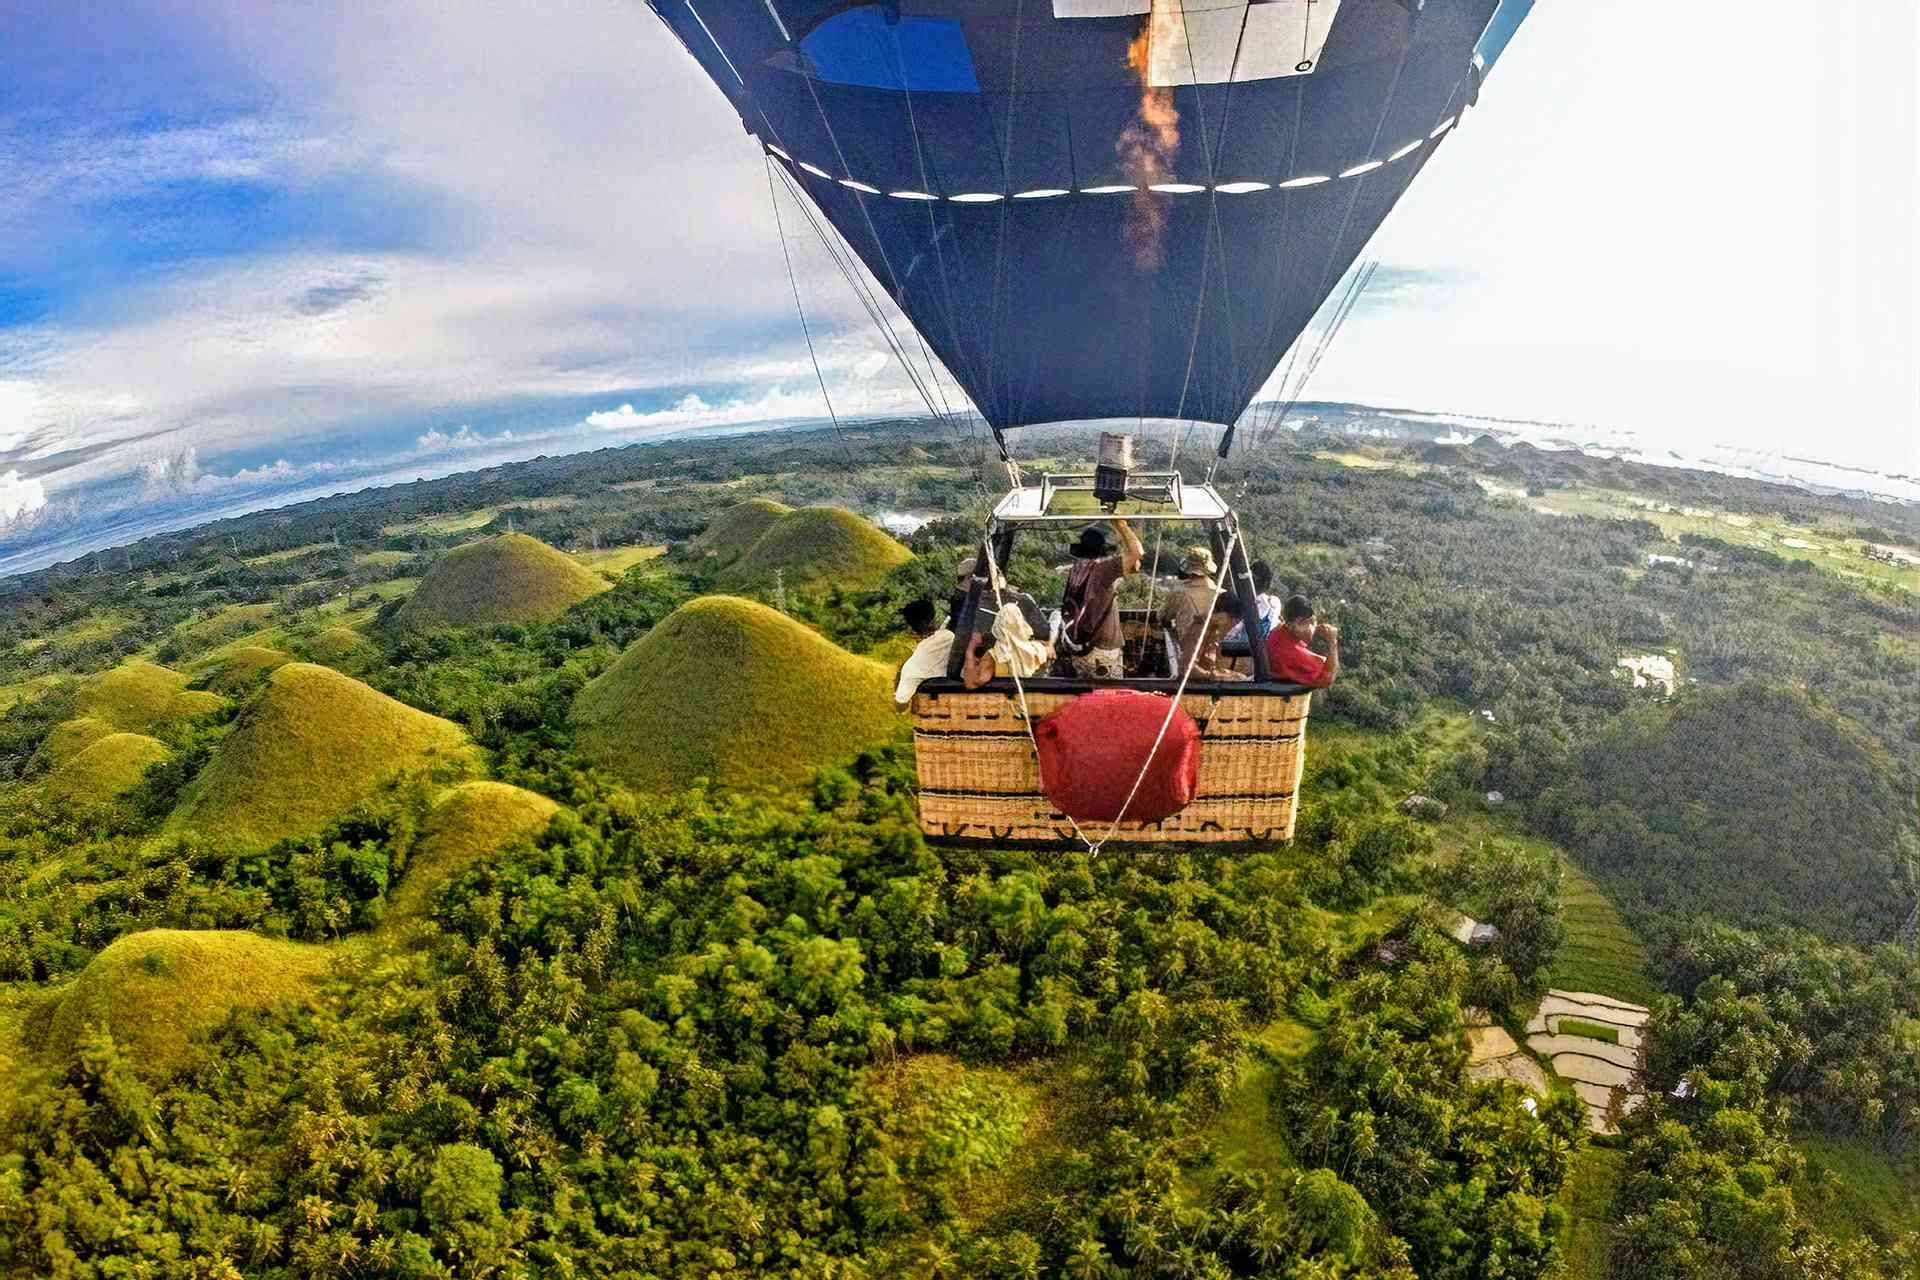 Balloon ride over Chocolate Hills, Bohol, Philippines